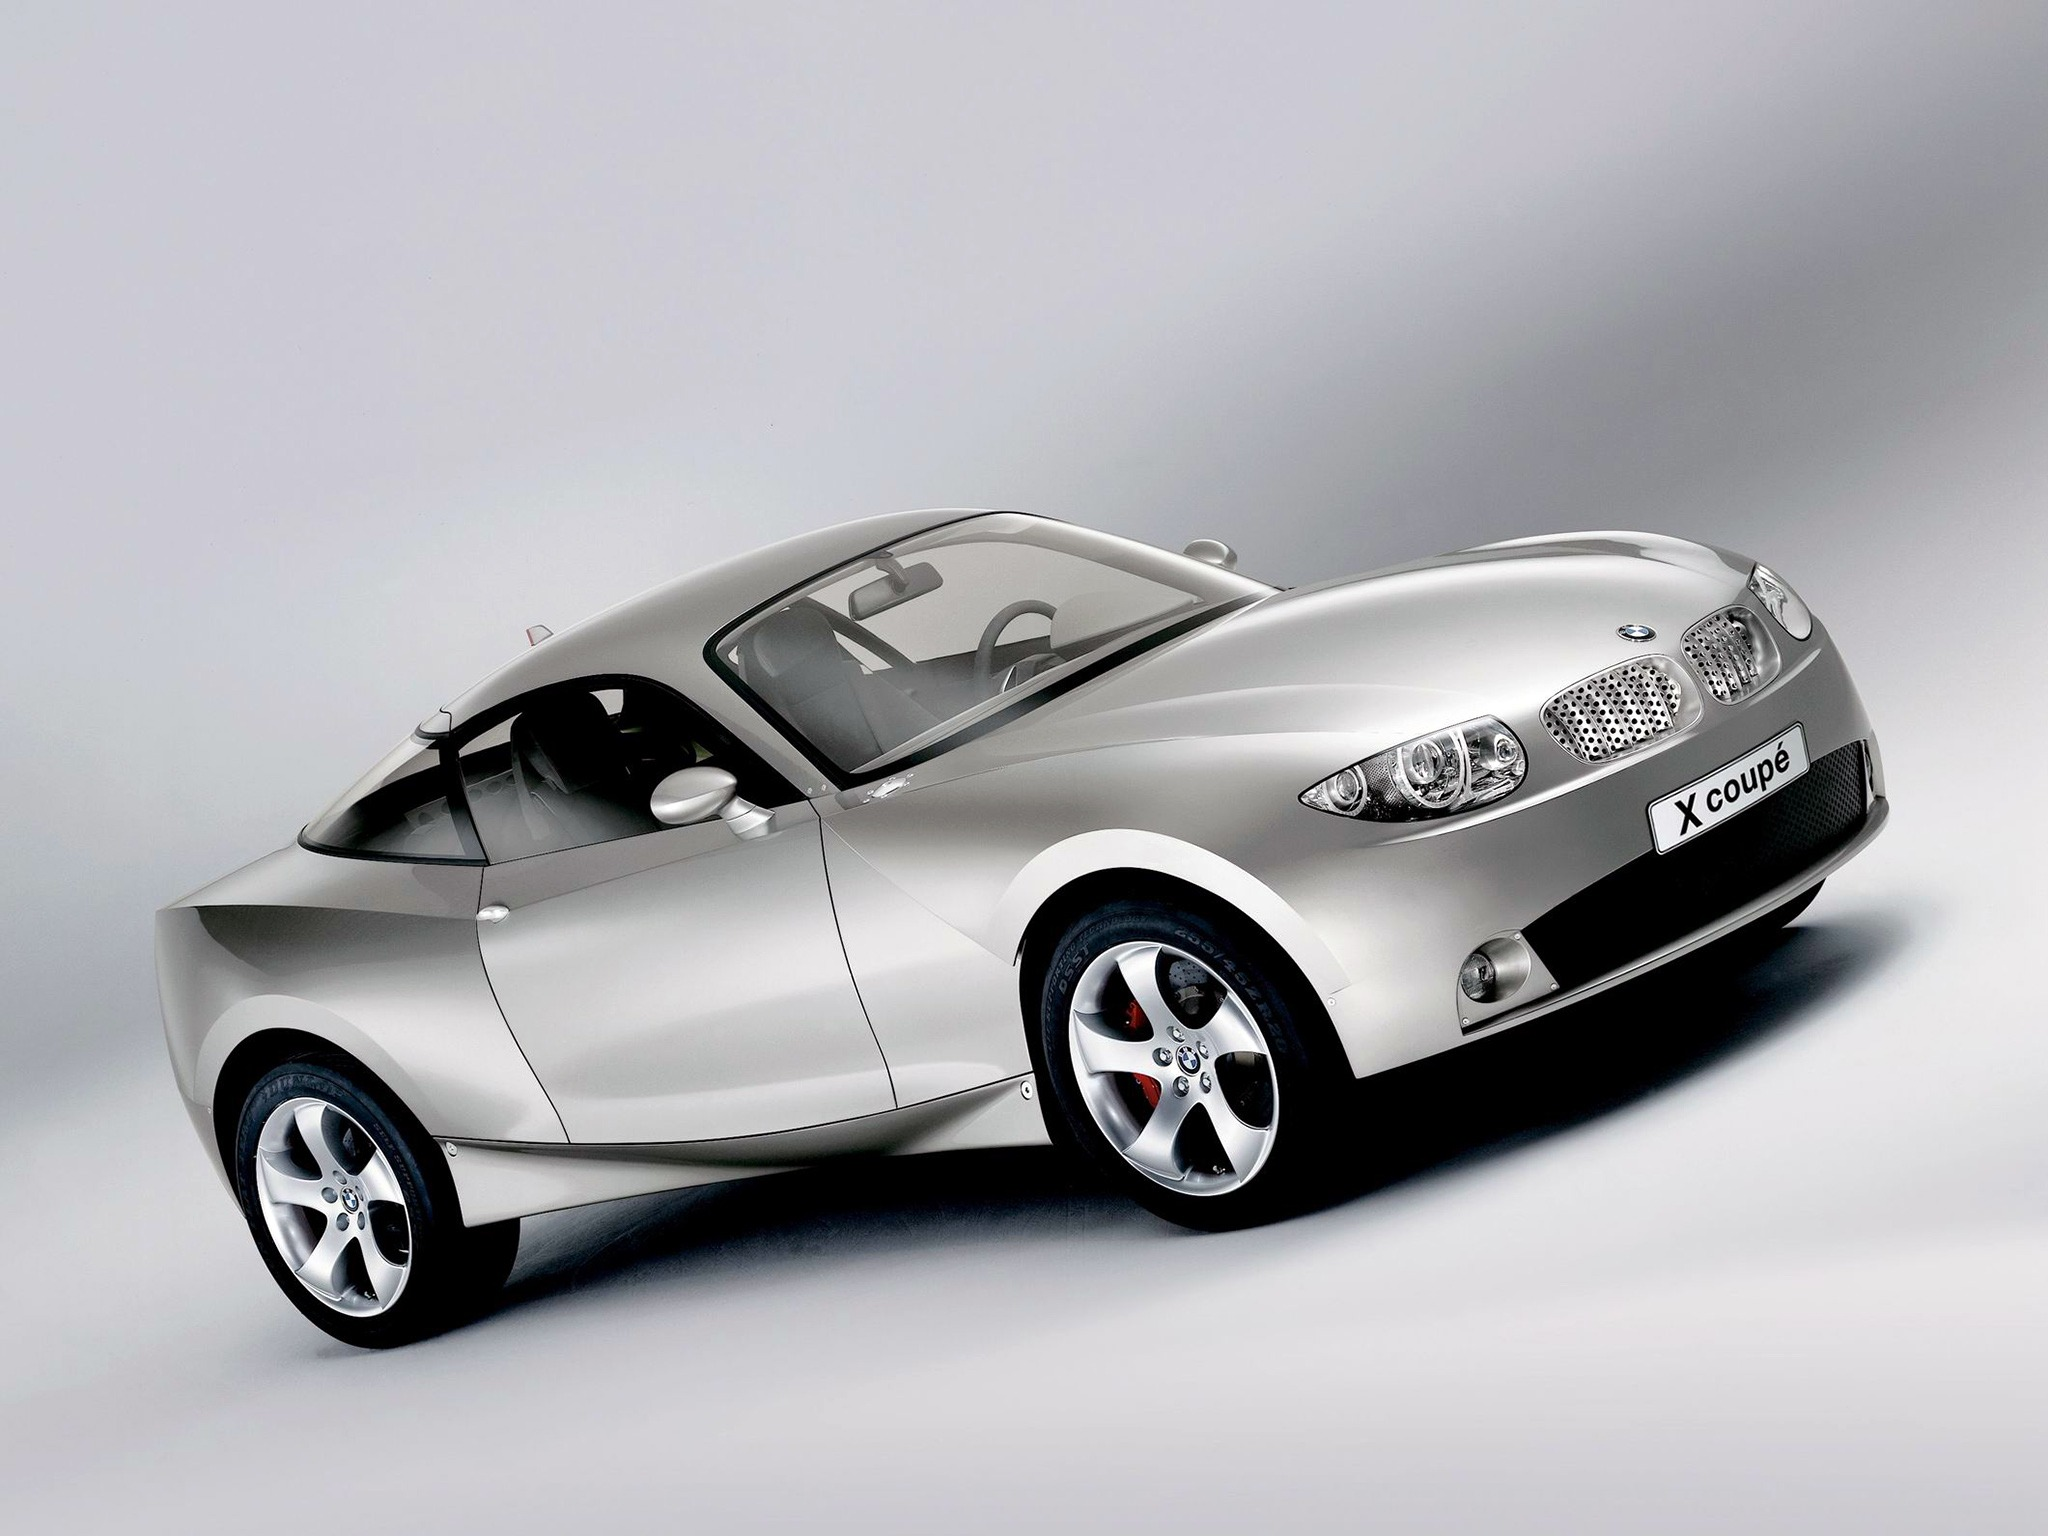 Bmw X Coupe 2001 Old Concept Cars